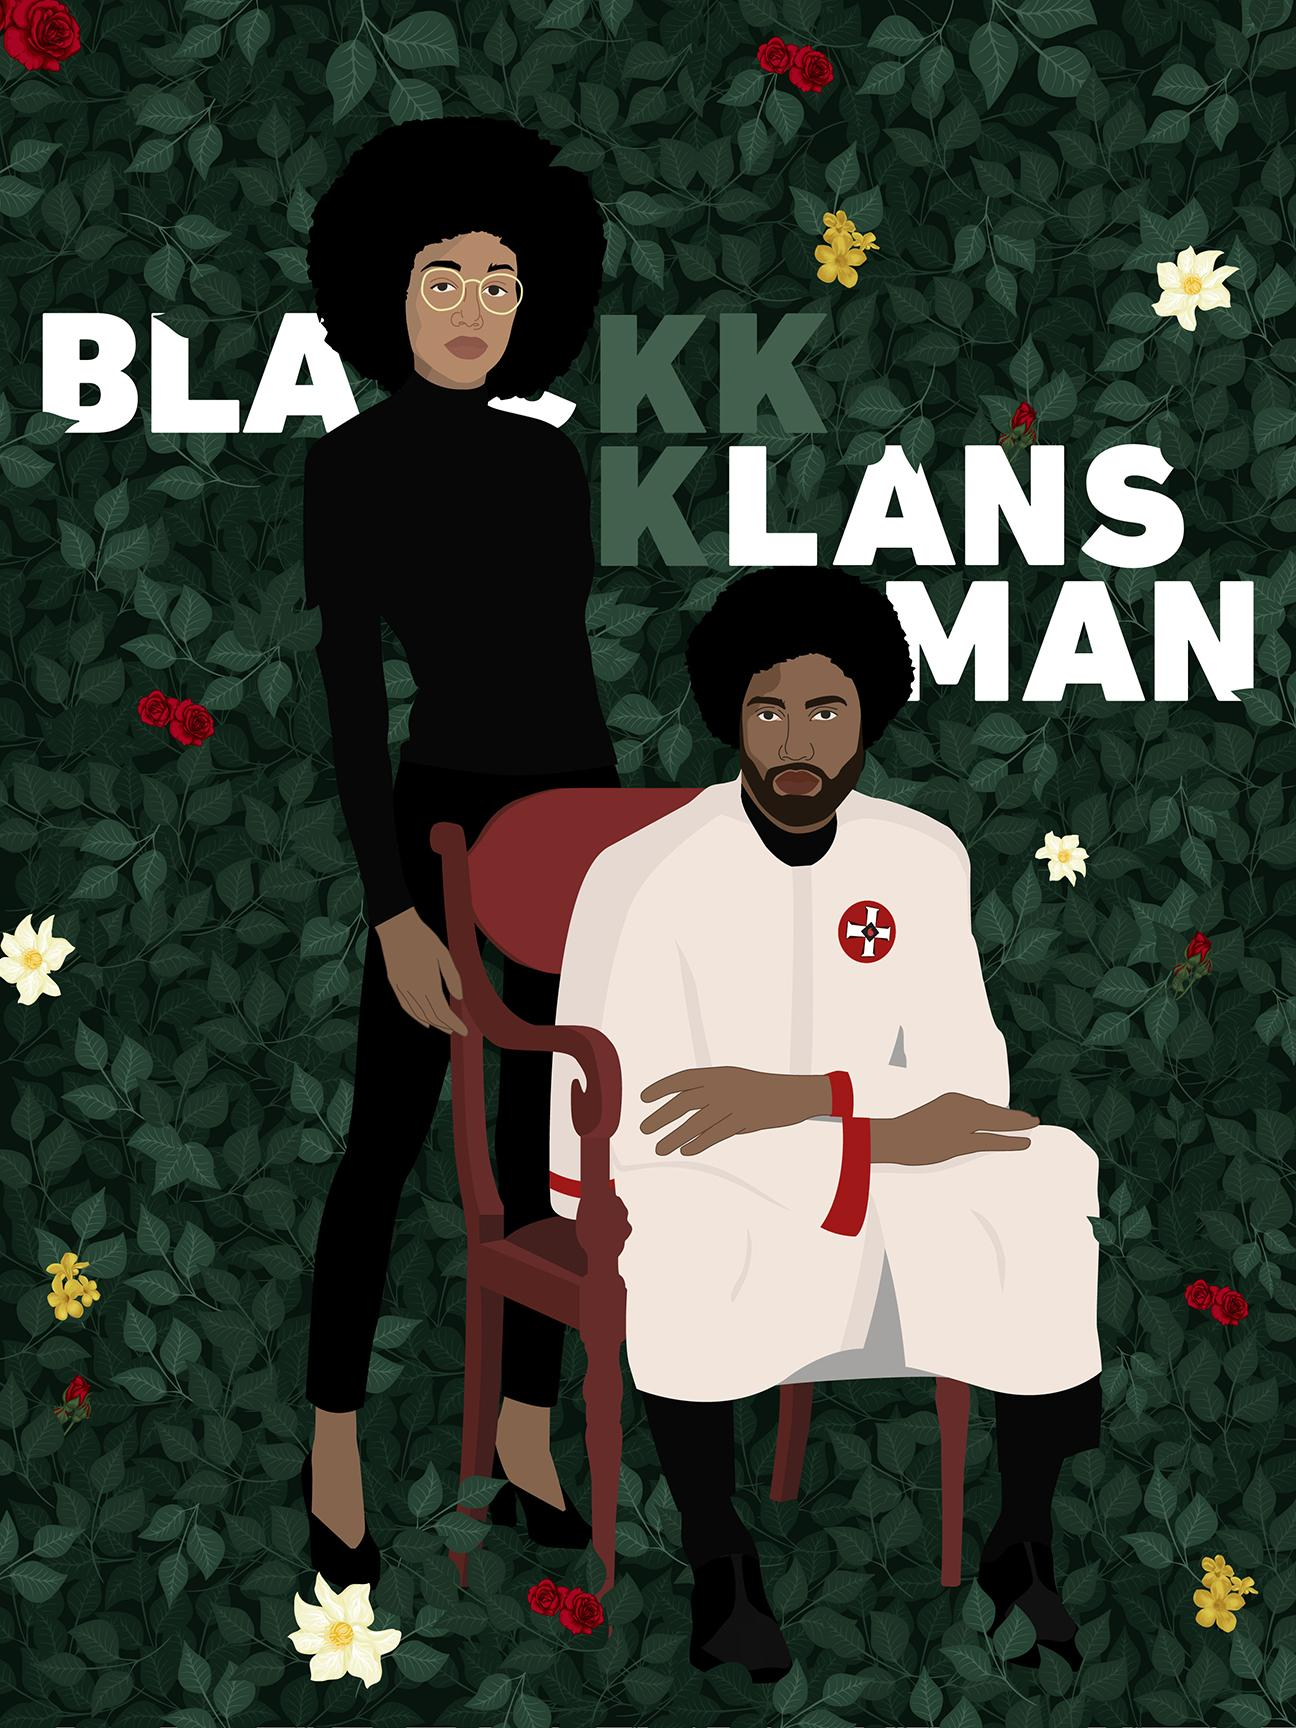 This BlacKkKlansman poster by Brenda Luu references Kehinde Wiley and his portrait of Barack Obama